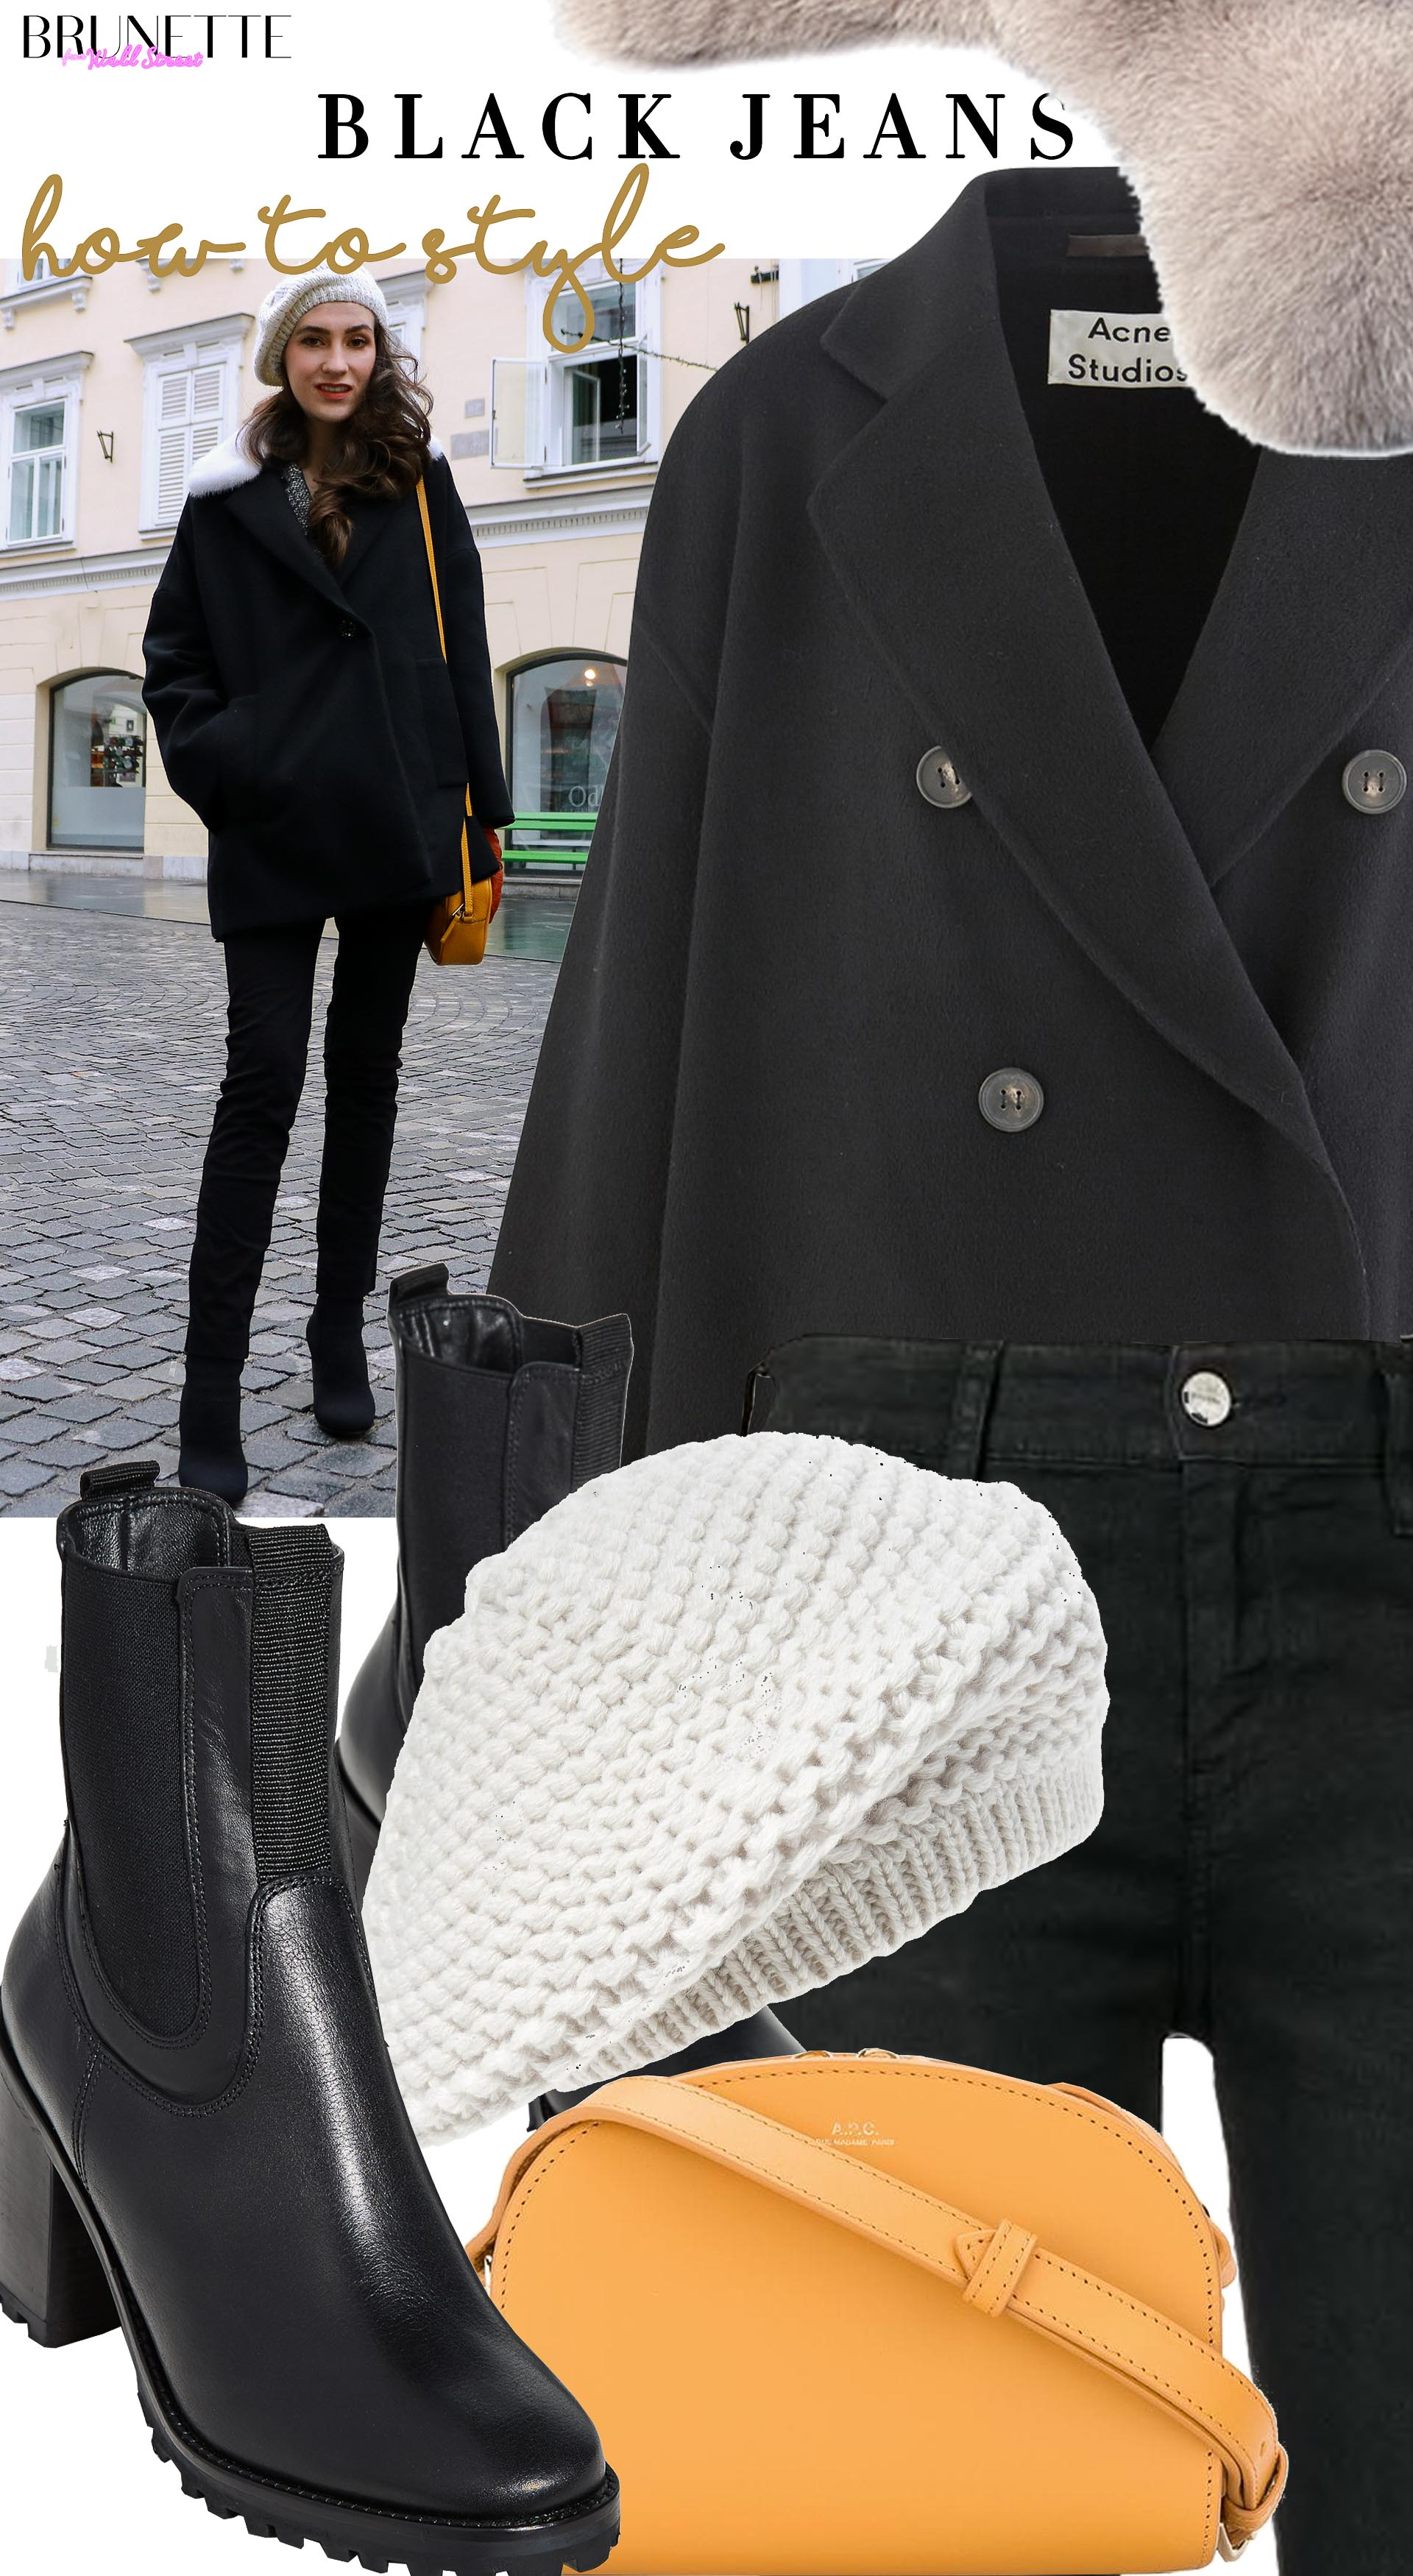 Brunette from Wall Street how to style black denim jeans black short coat lug sole boots white beret yellow crossbody bag